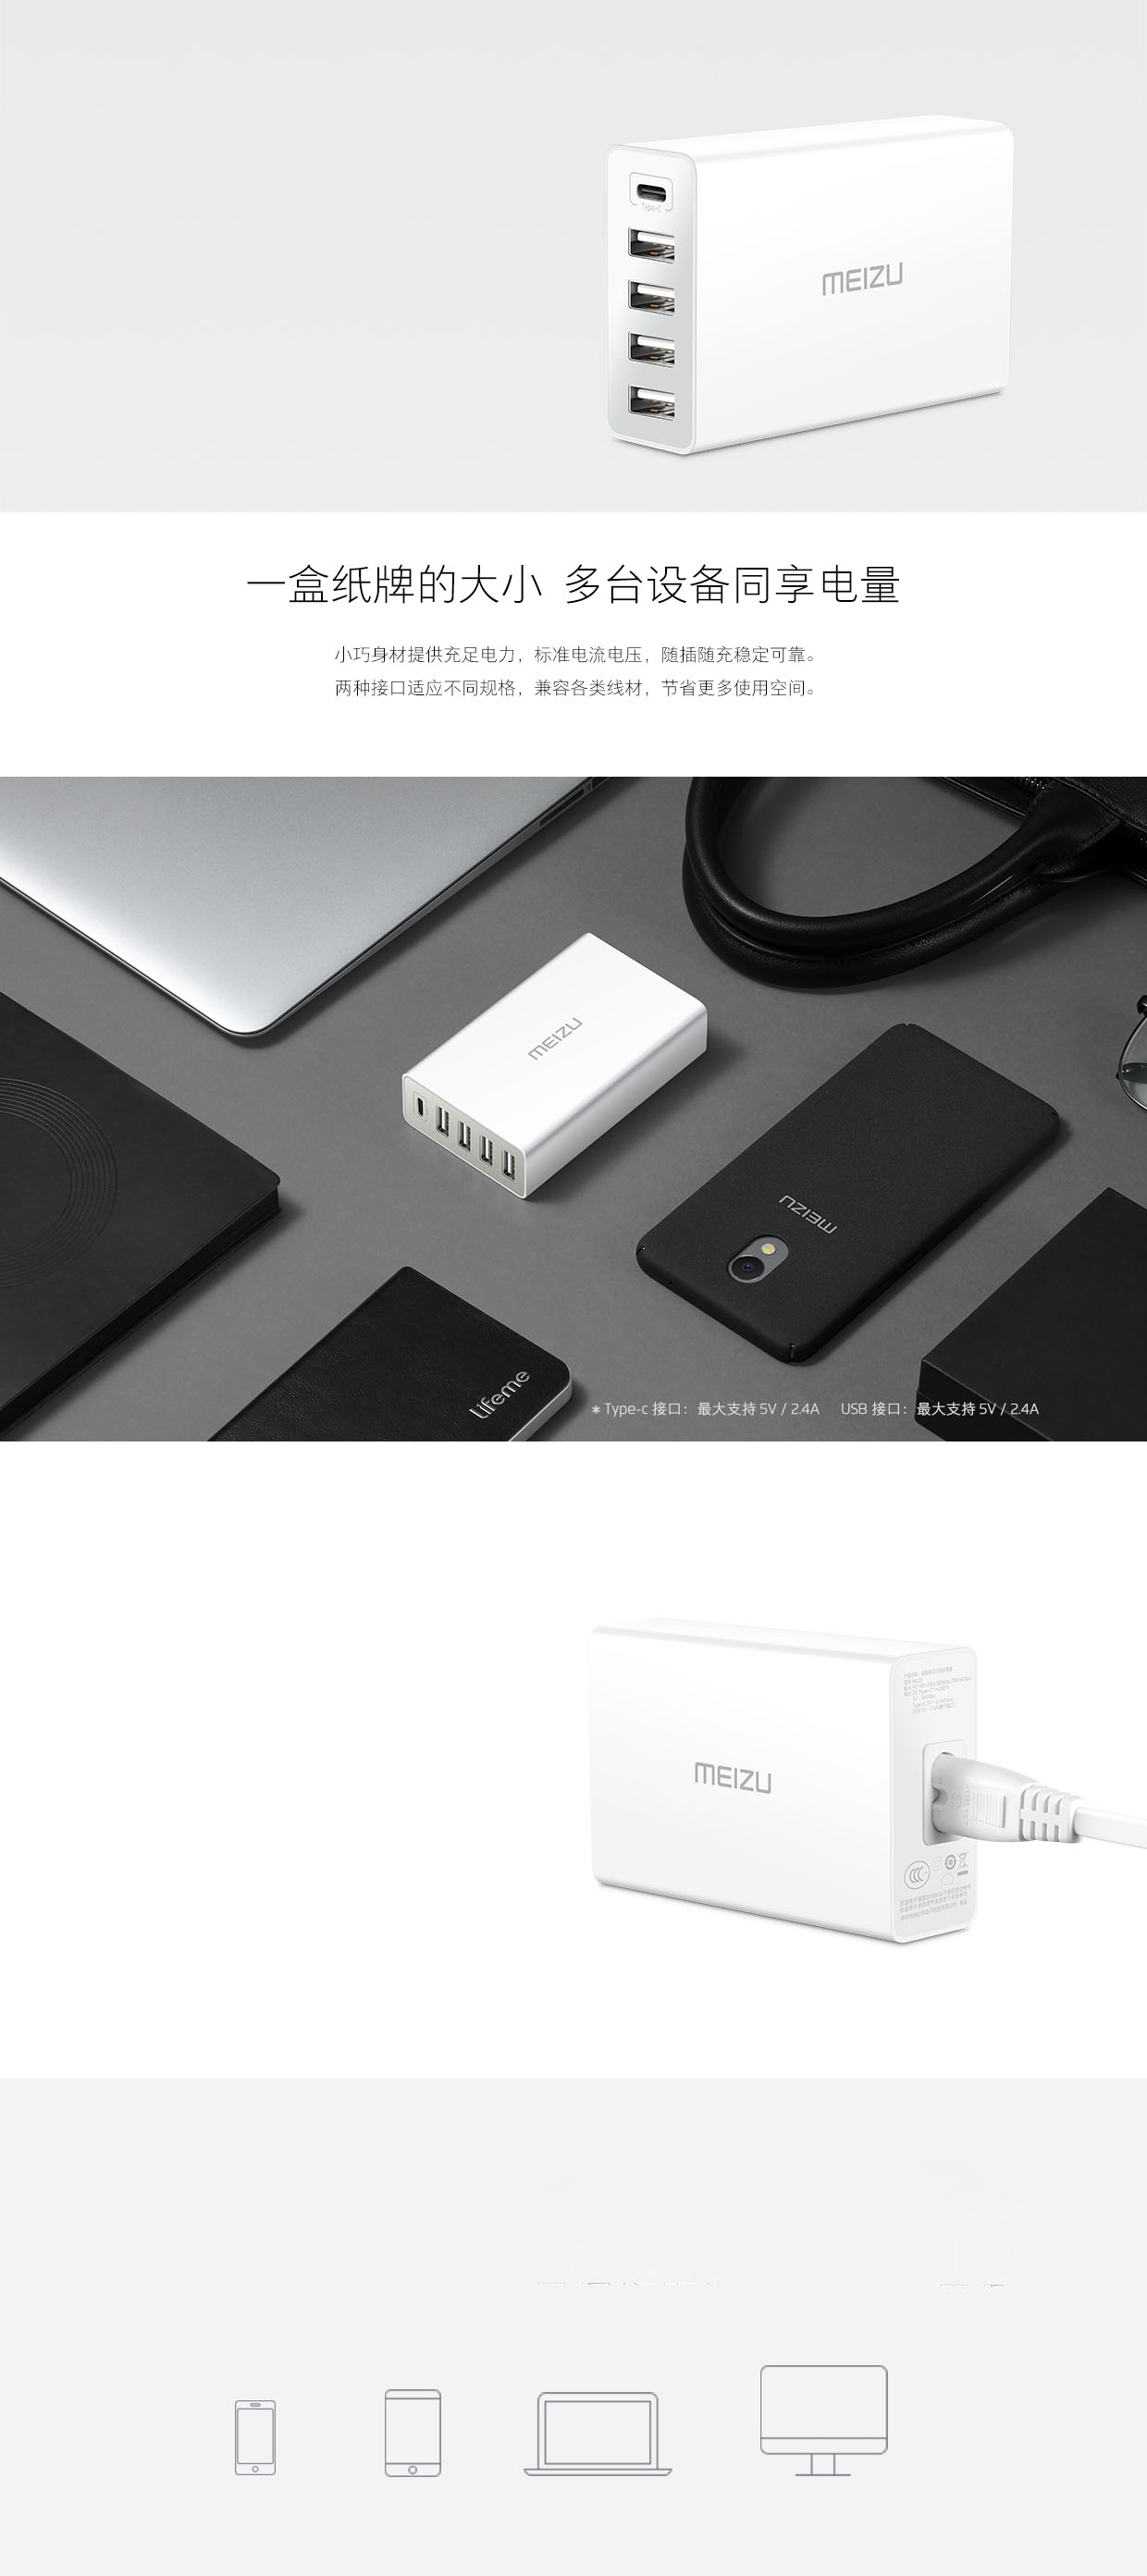 MEIZU USB Charger